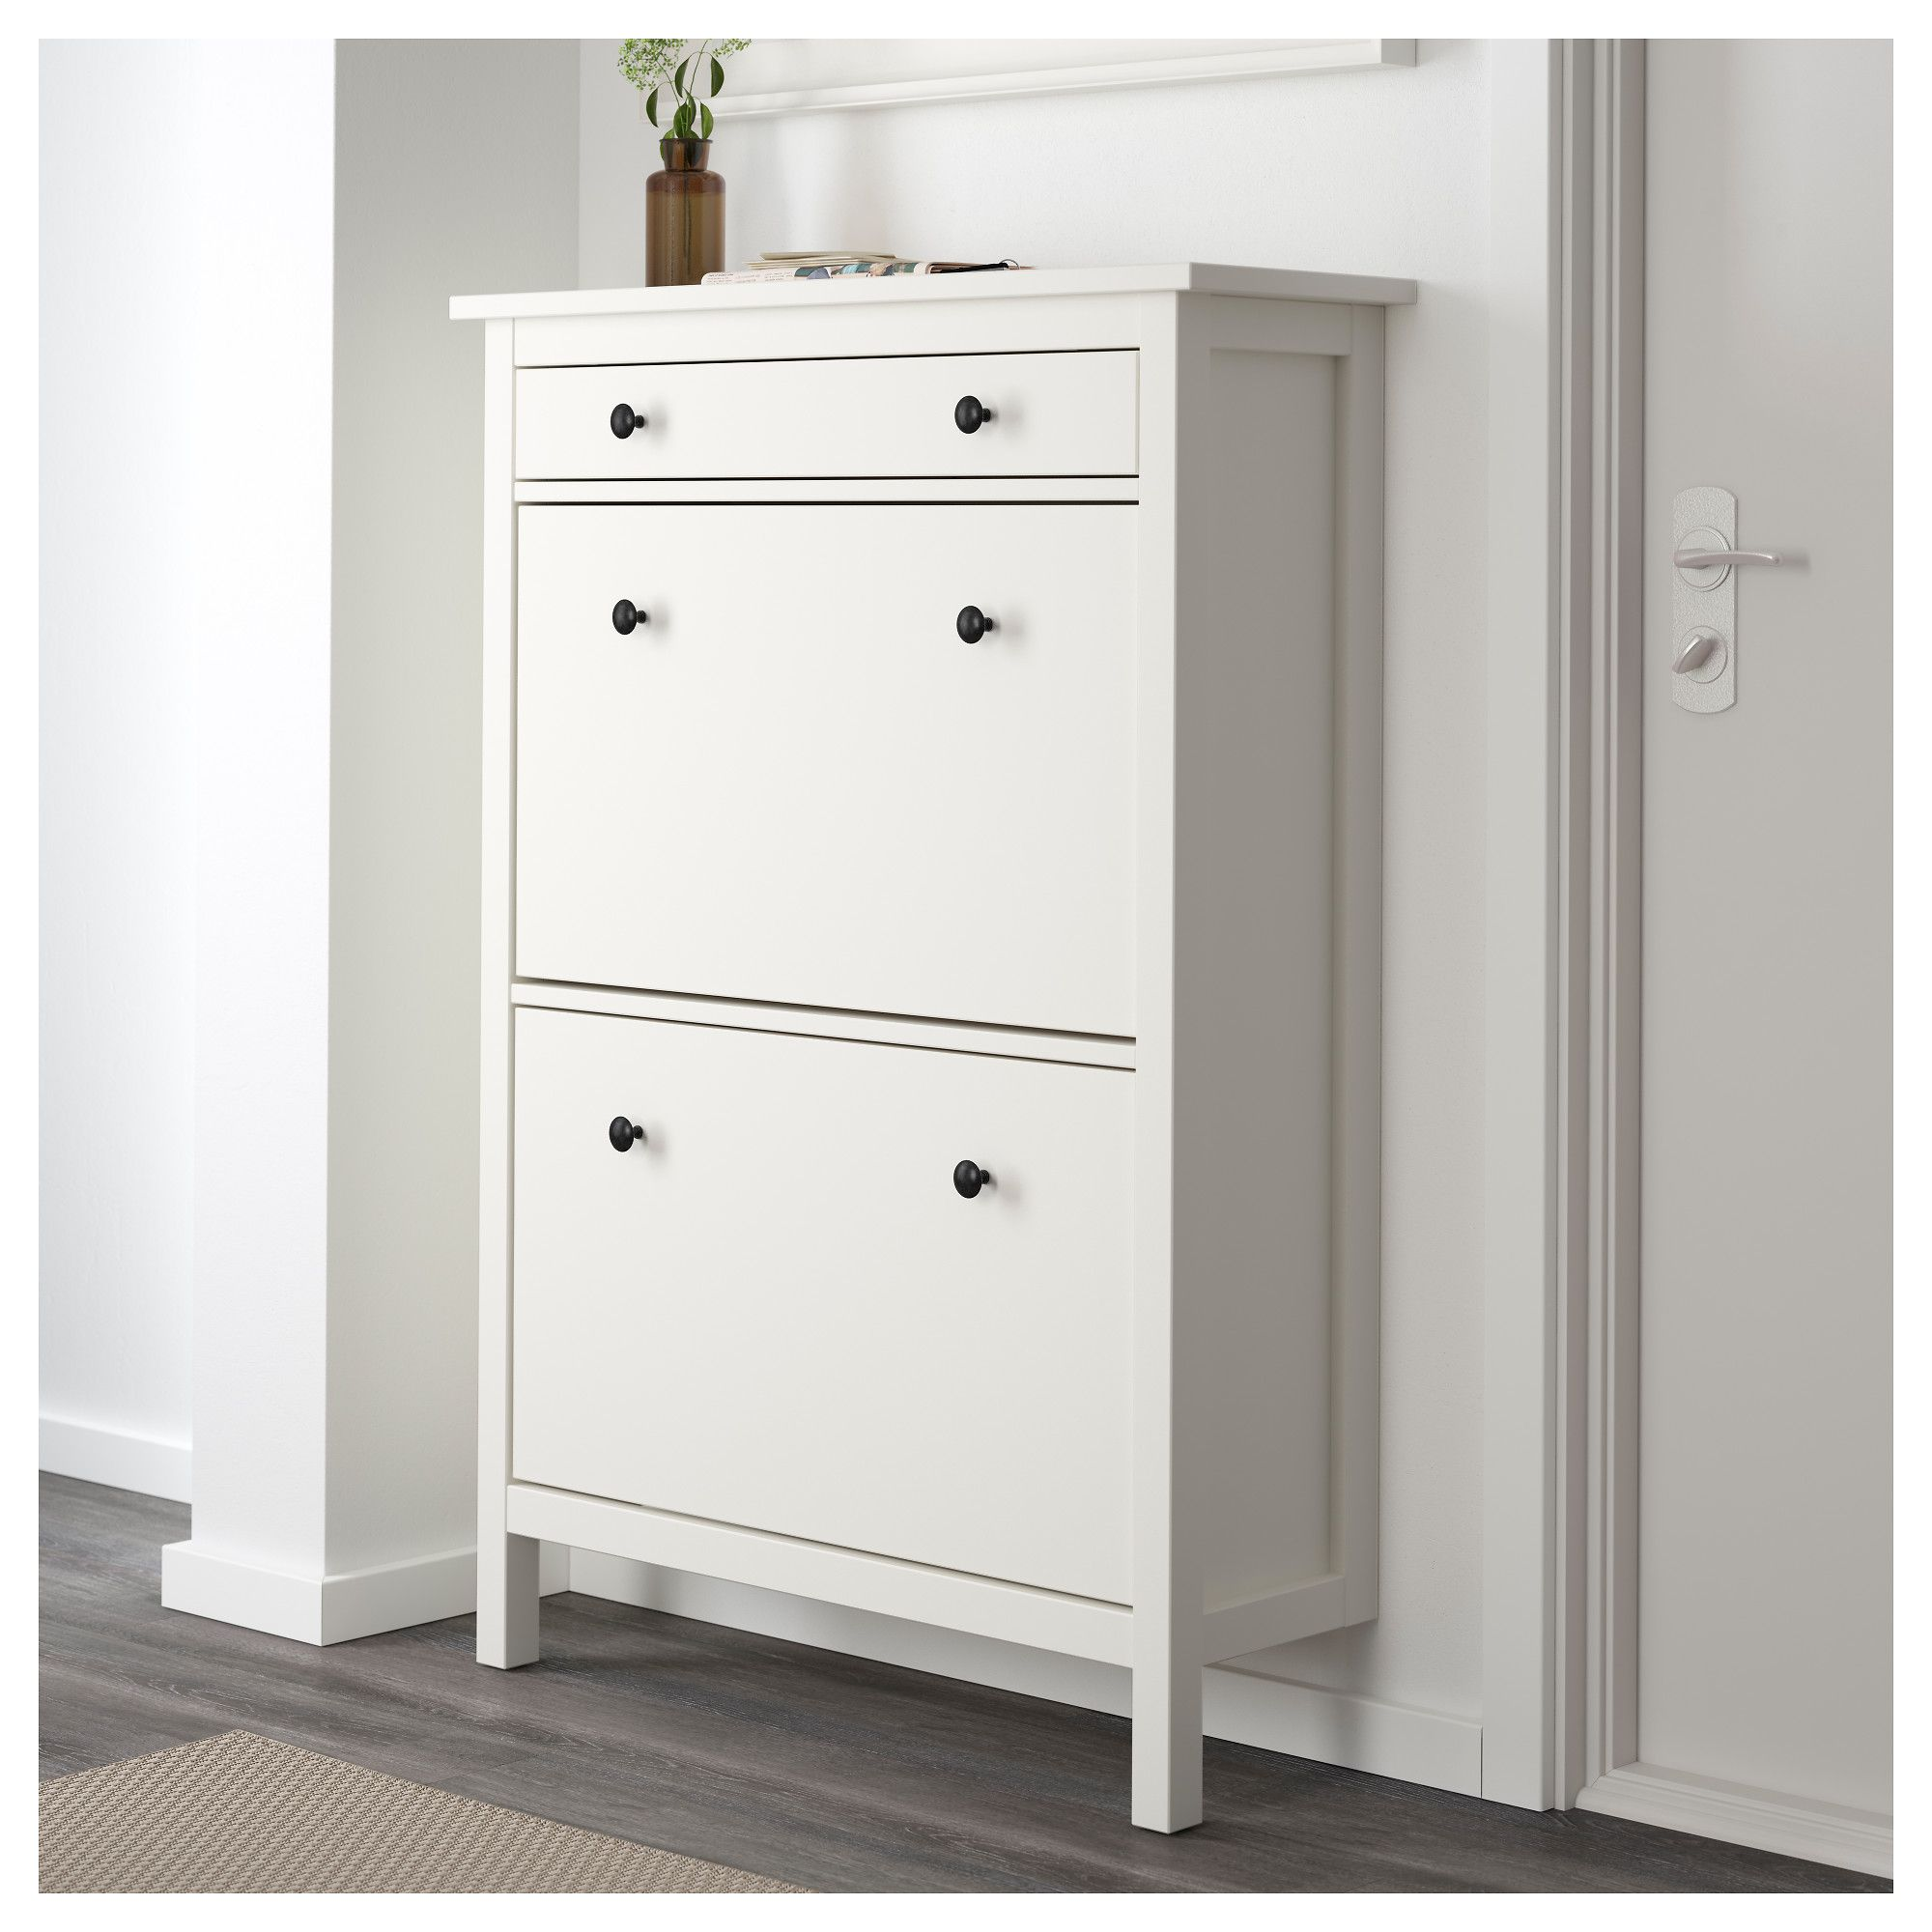 ikea hemnes shoe cabinet with 2 compartments white. Black Bedroom Furniture Sets. Home Design Ideas